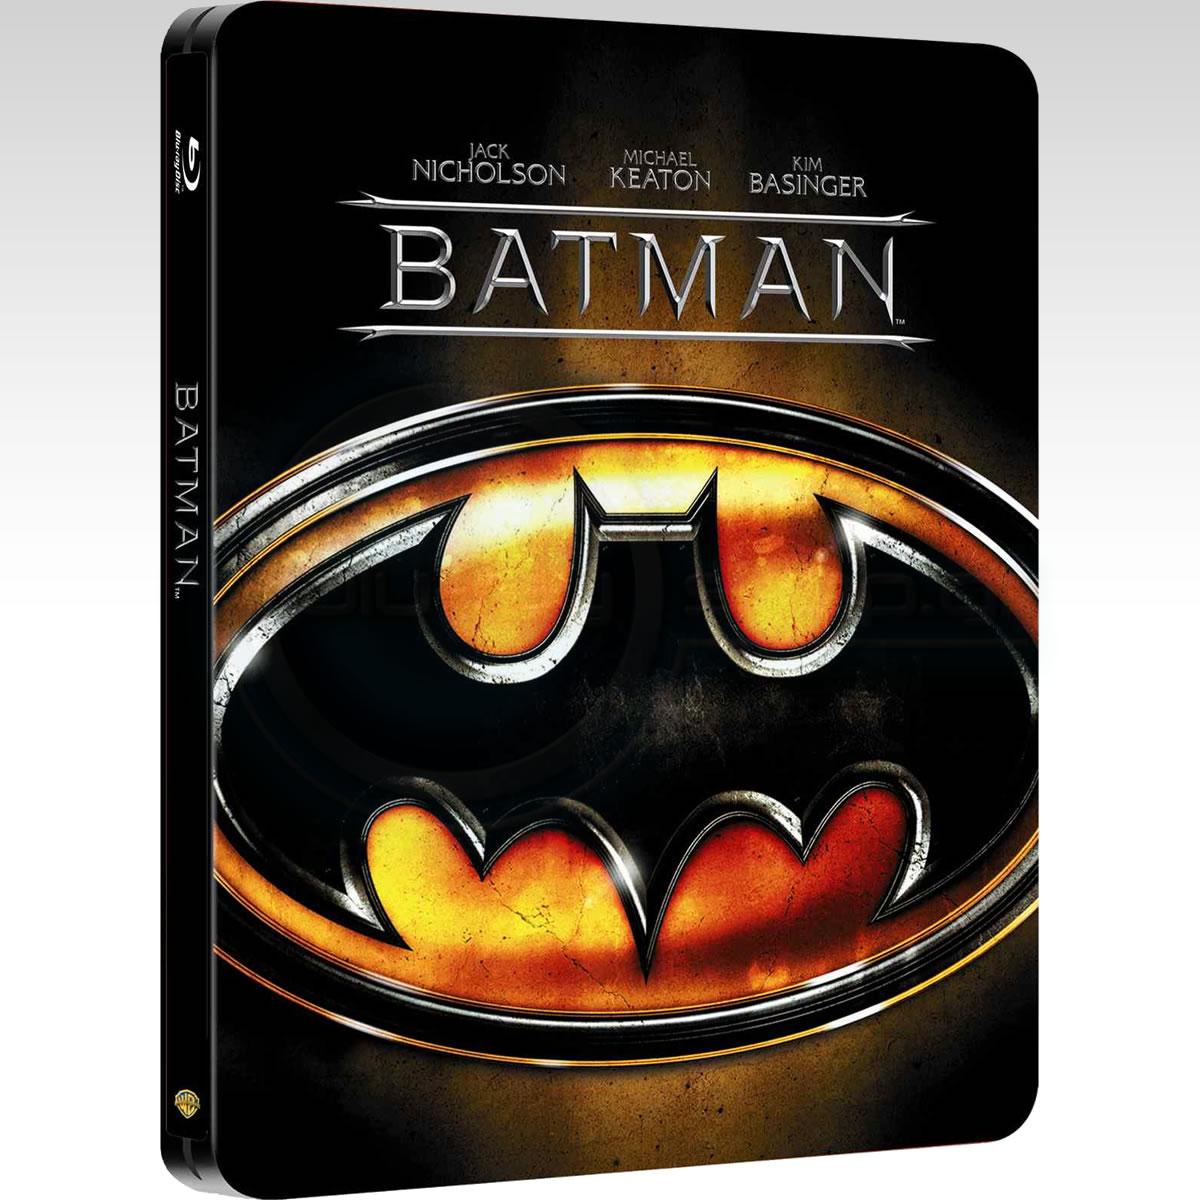 BATMAN Limited Collector's Edition Steelbook ������������ [��������� �� ���������� ����������] (BLU-RAY)